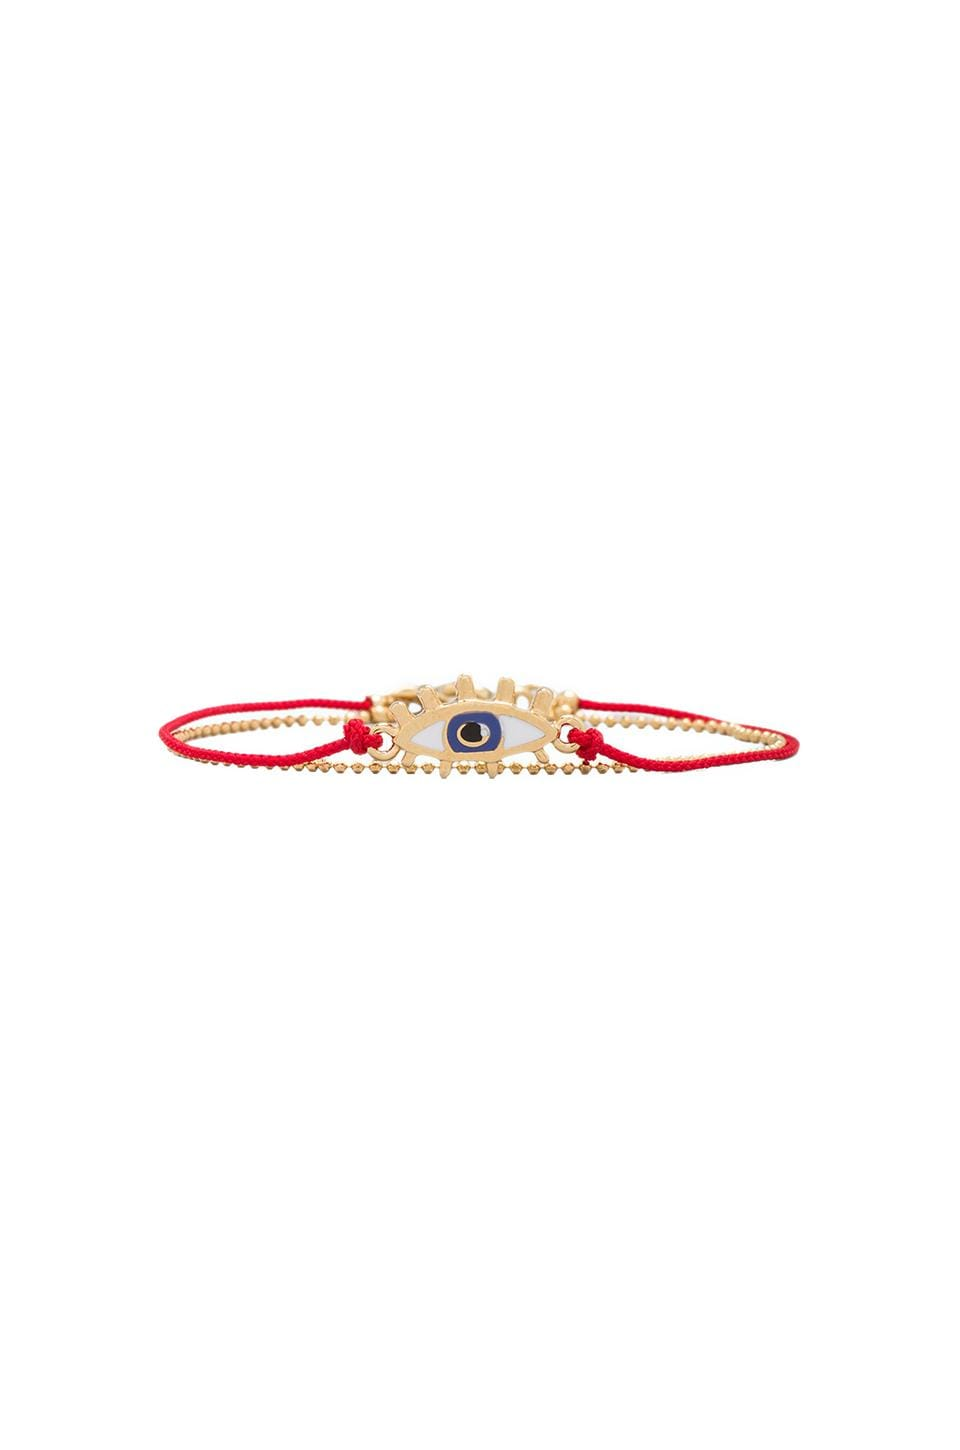 Marc by Marc Jacobs Enamel Eye Friendship Bracelet in Macintosh Apple Red (Oro)